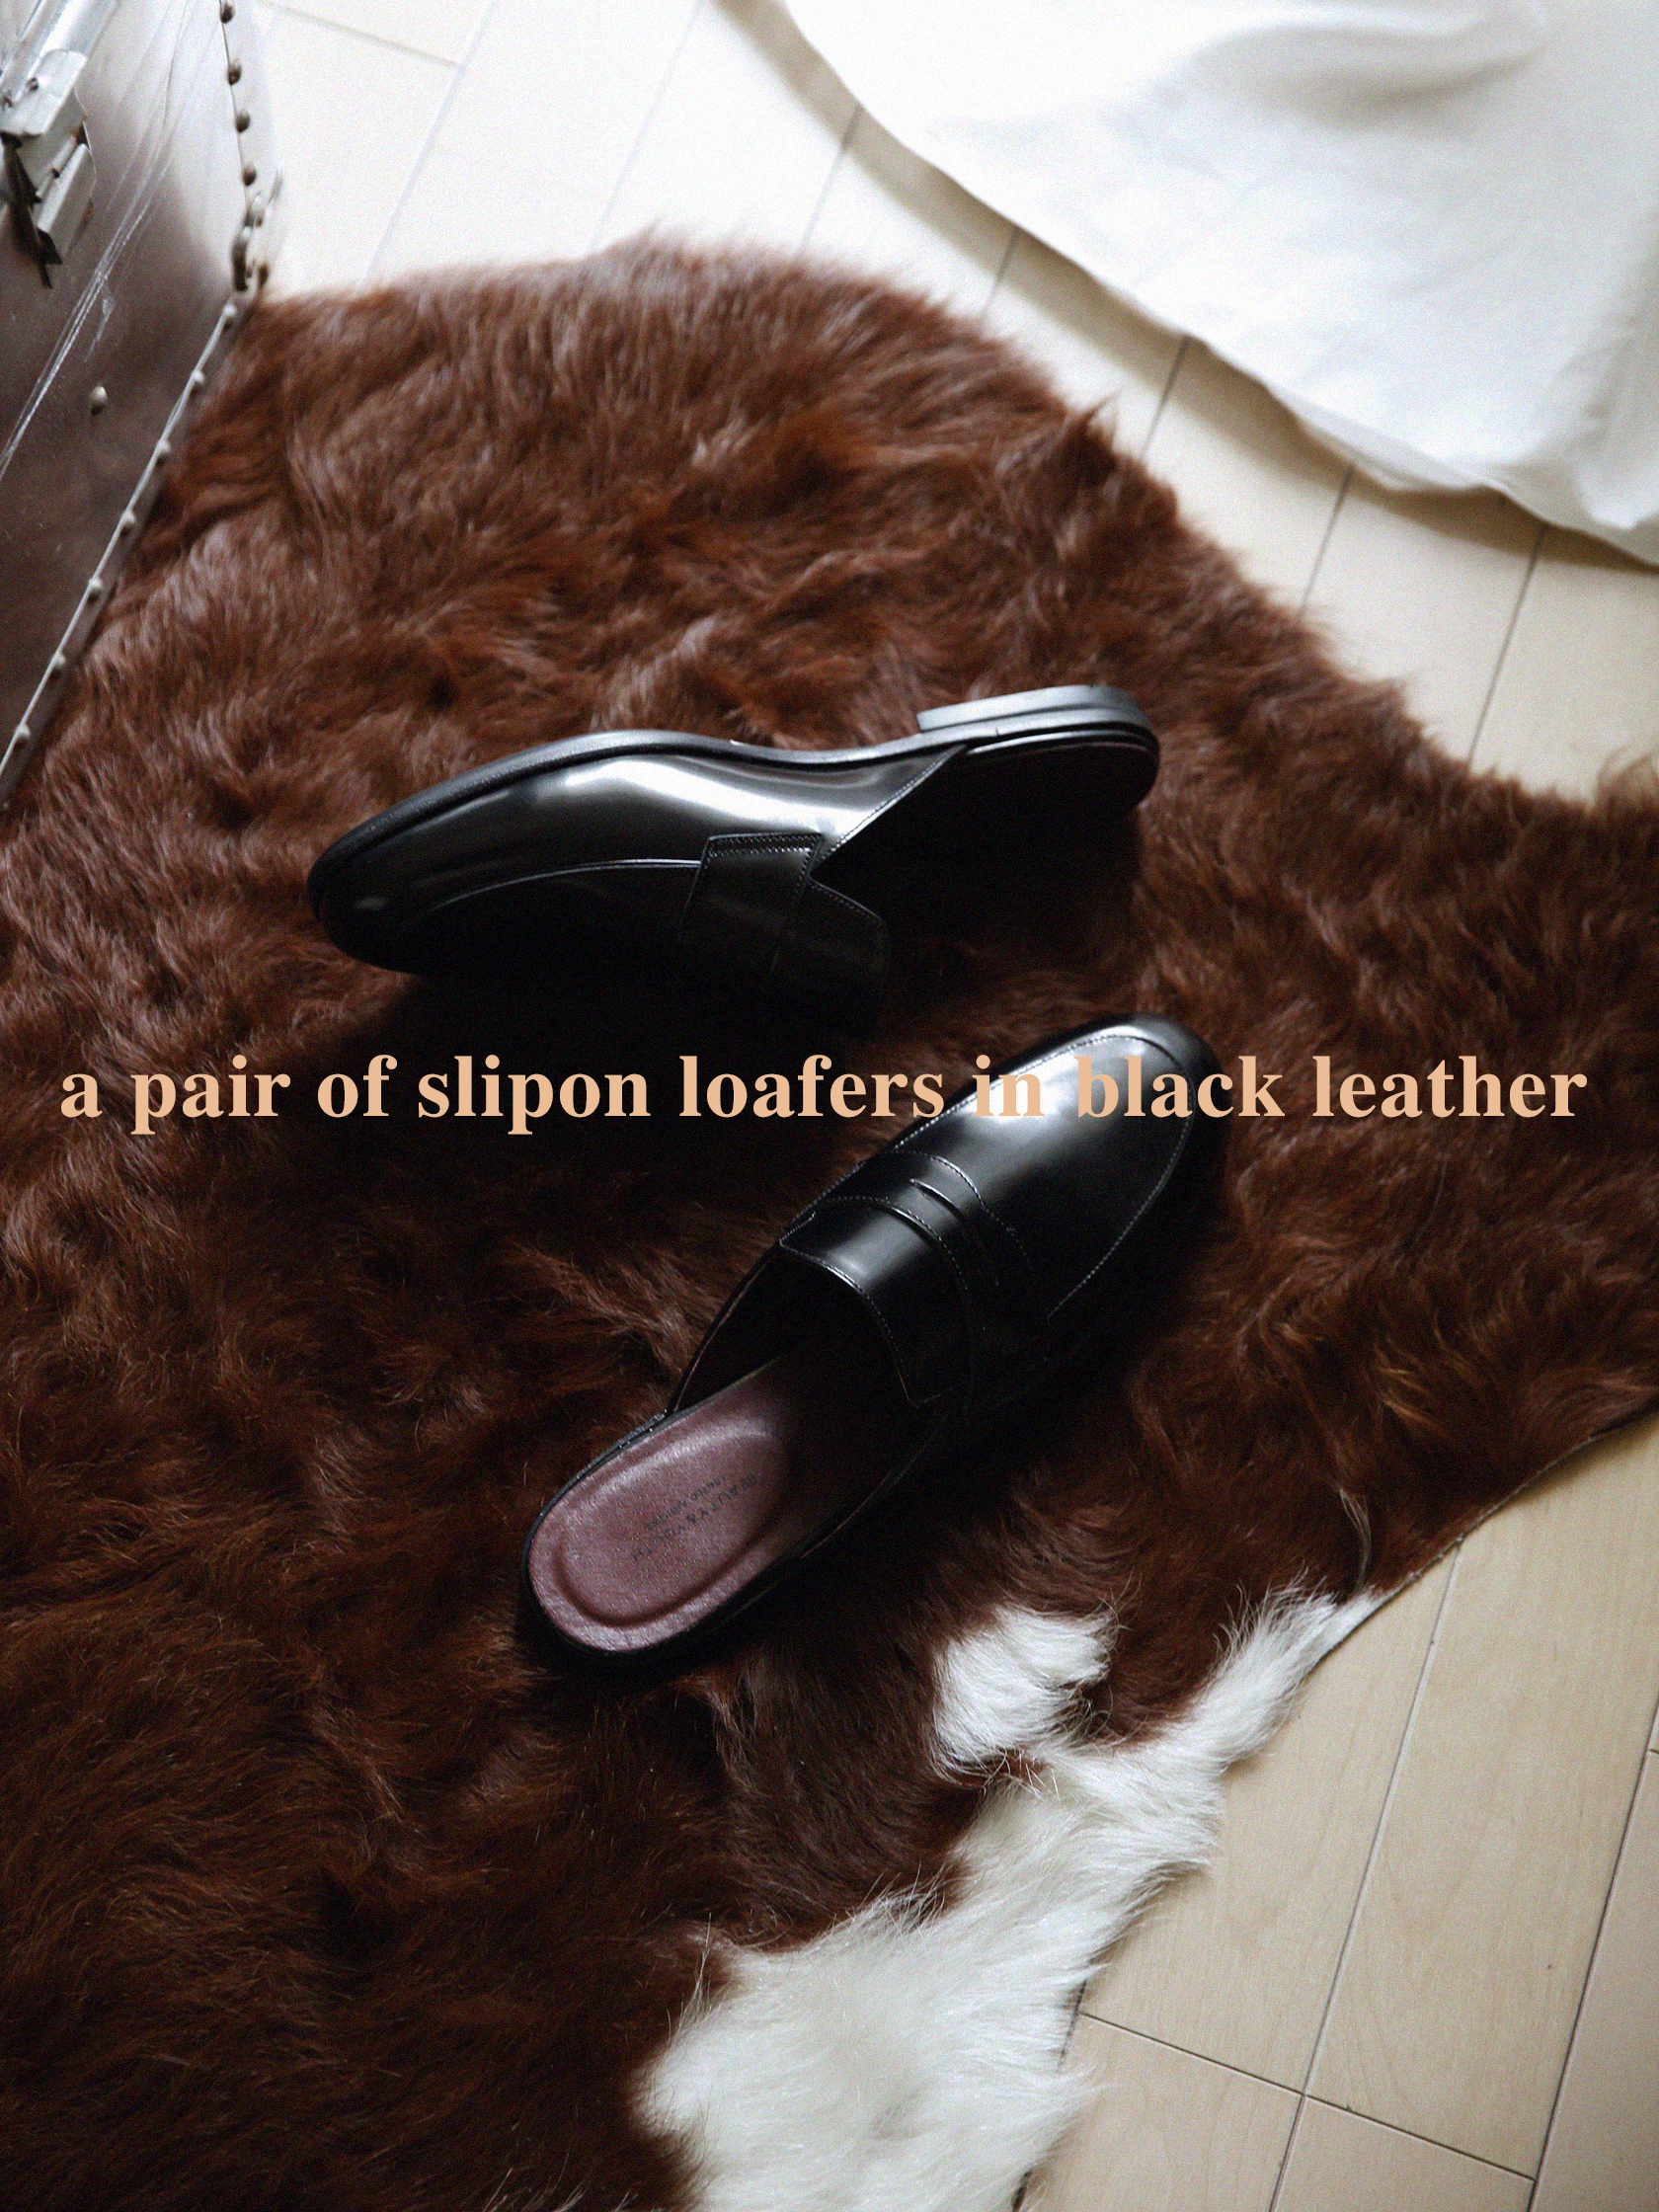 slipon loafers a with words